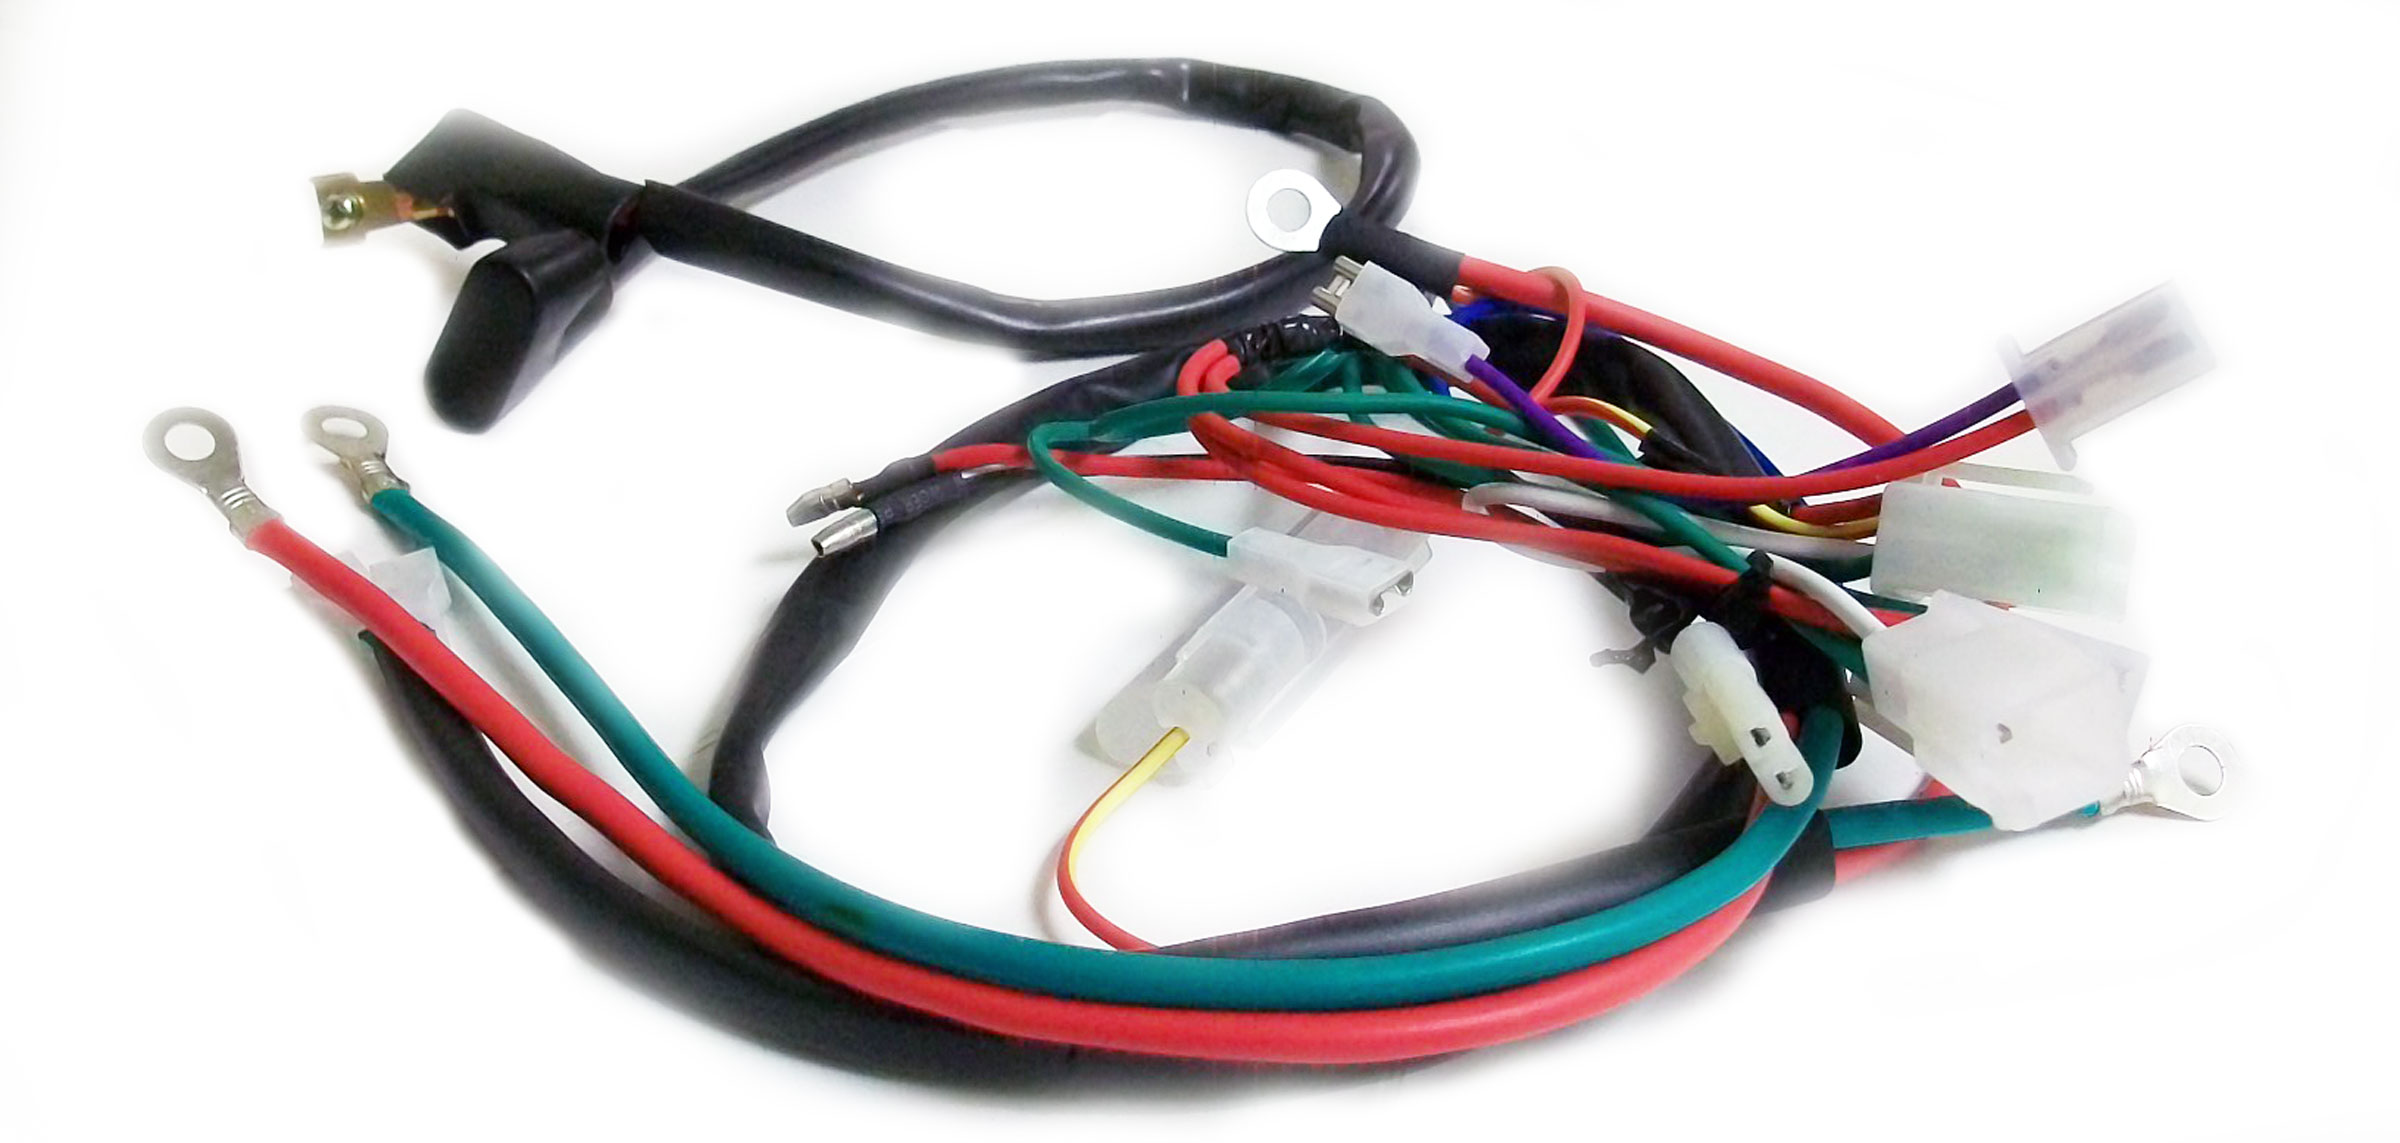 yerf dog wiring harness yerf image wiring diagram out of stock engine wiring harness for gy6 150cc engine used on yerf dog wiring harness